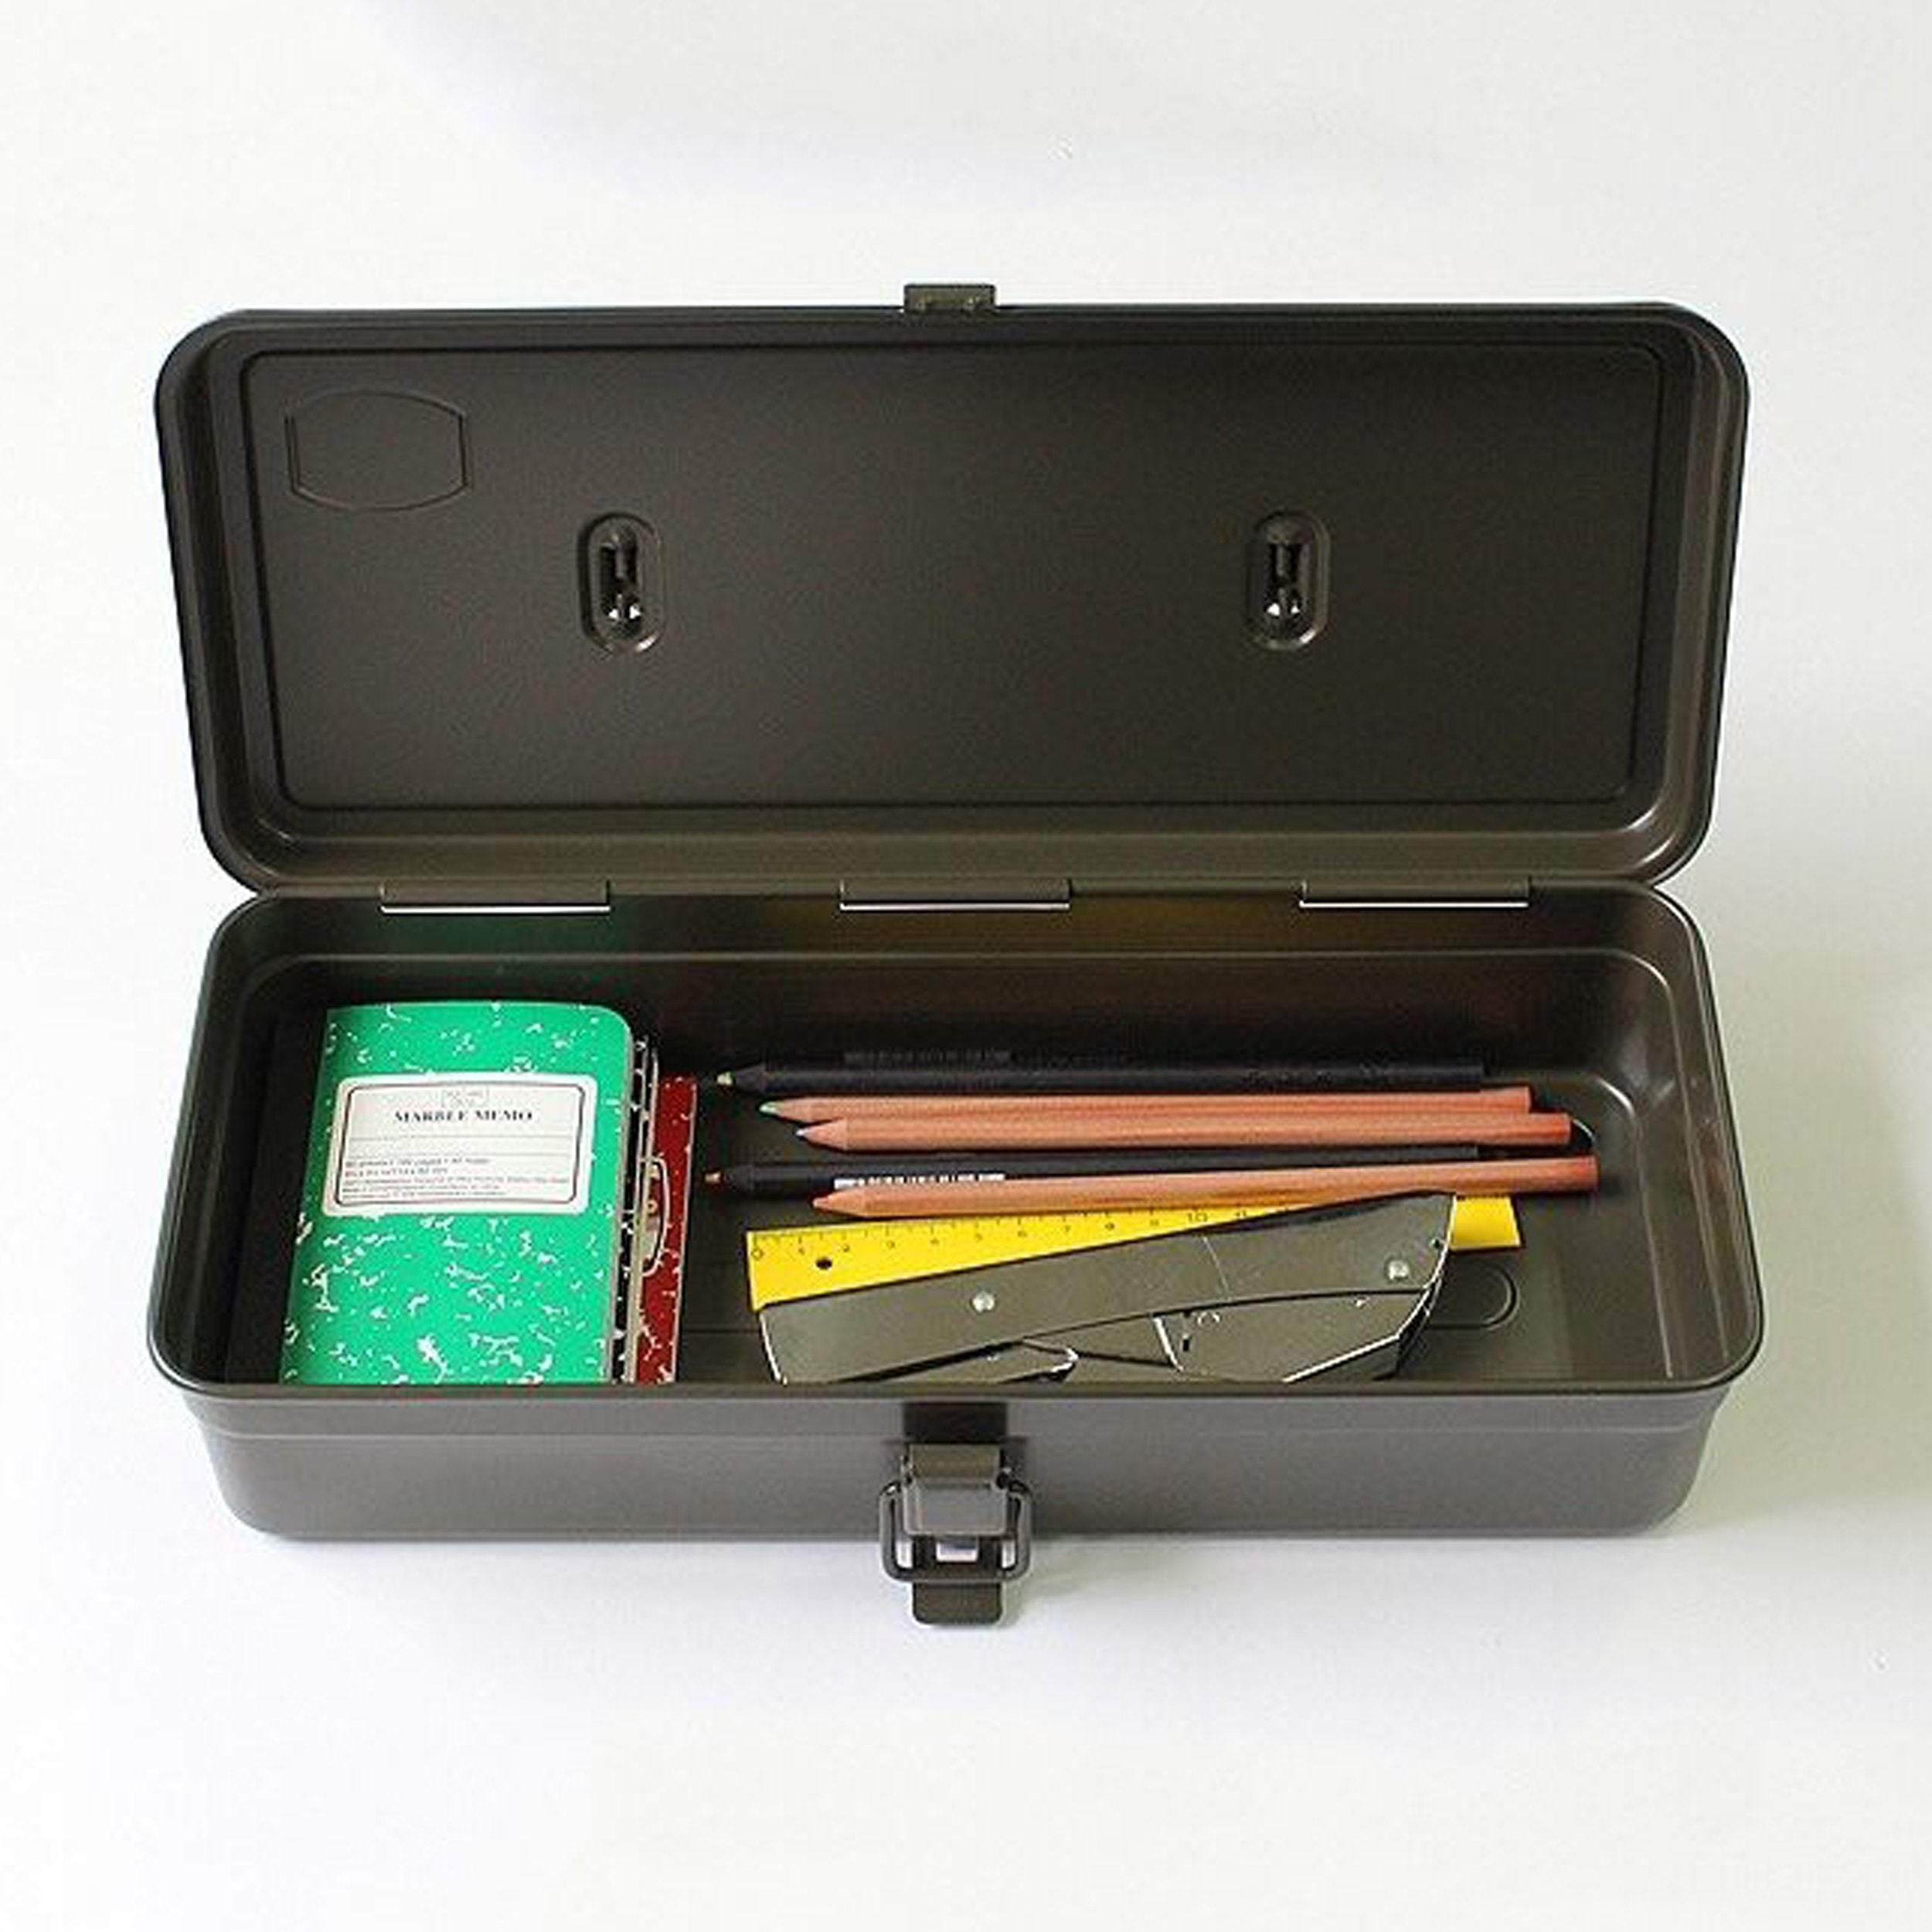 Steel Toolbox with Top Handle and Flat Lid, style T-320